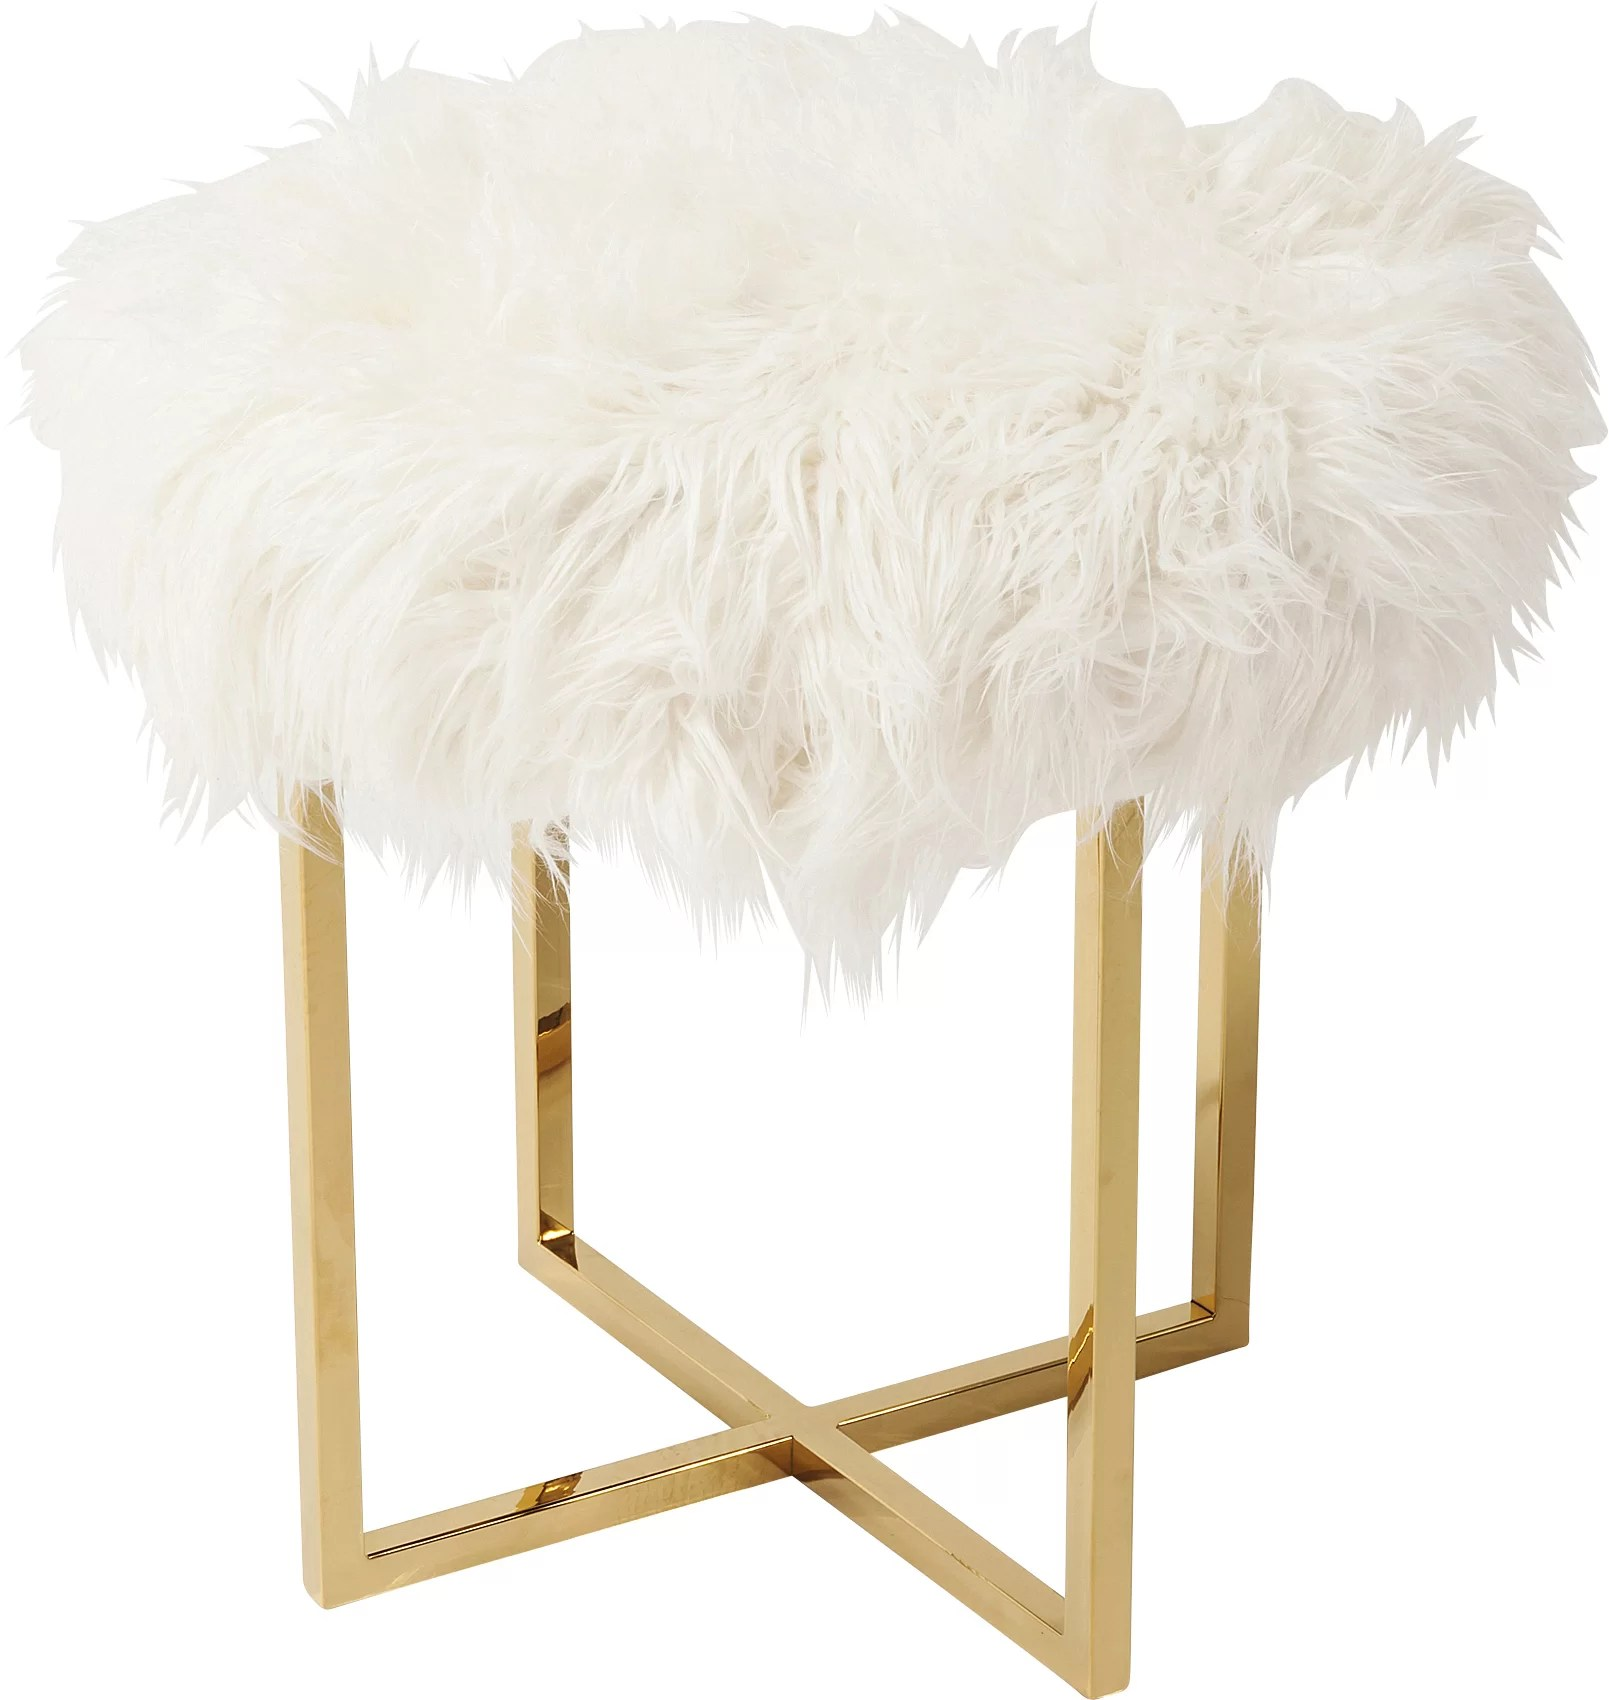 Kare Design Hocker Fell Hocker Mr Fluffy